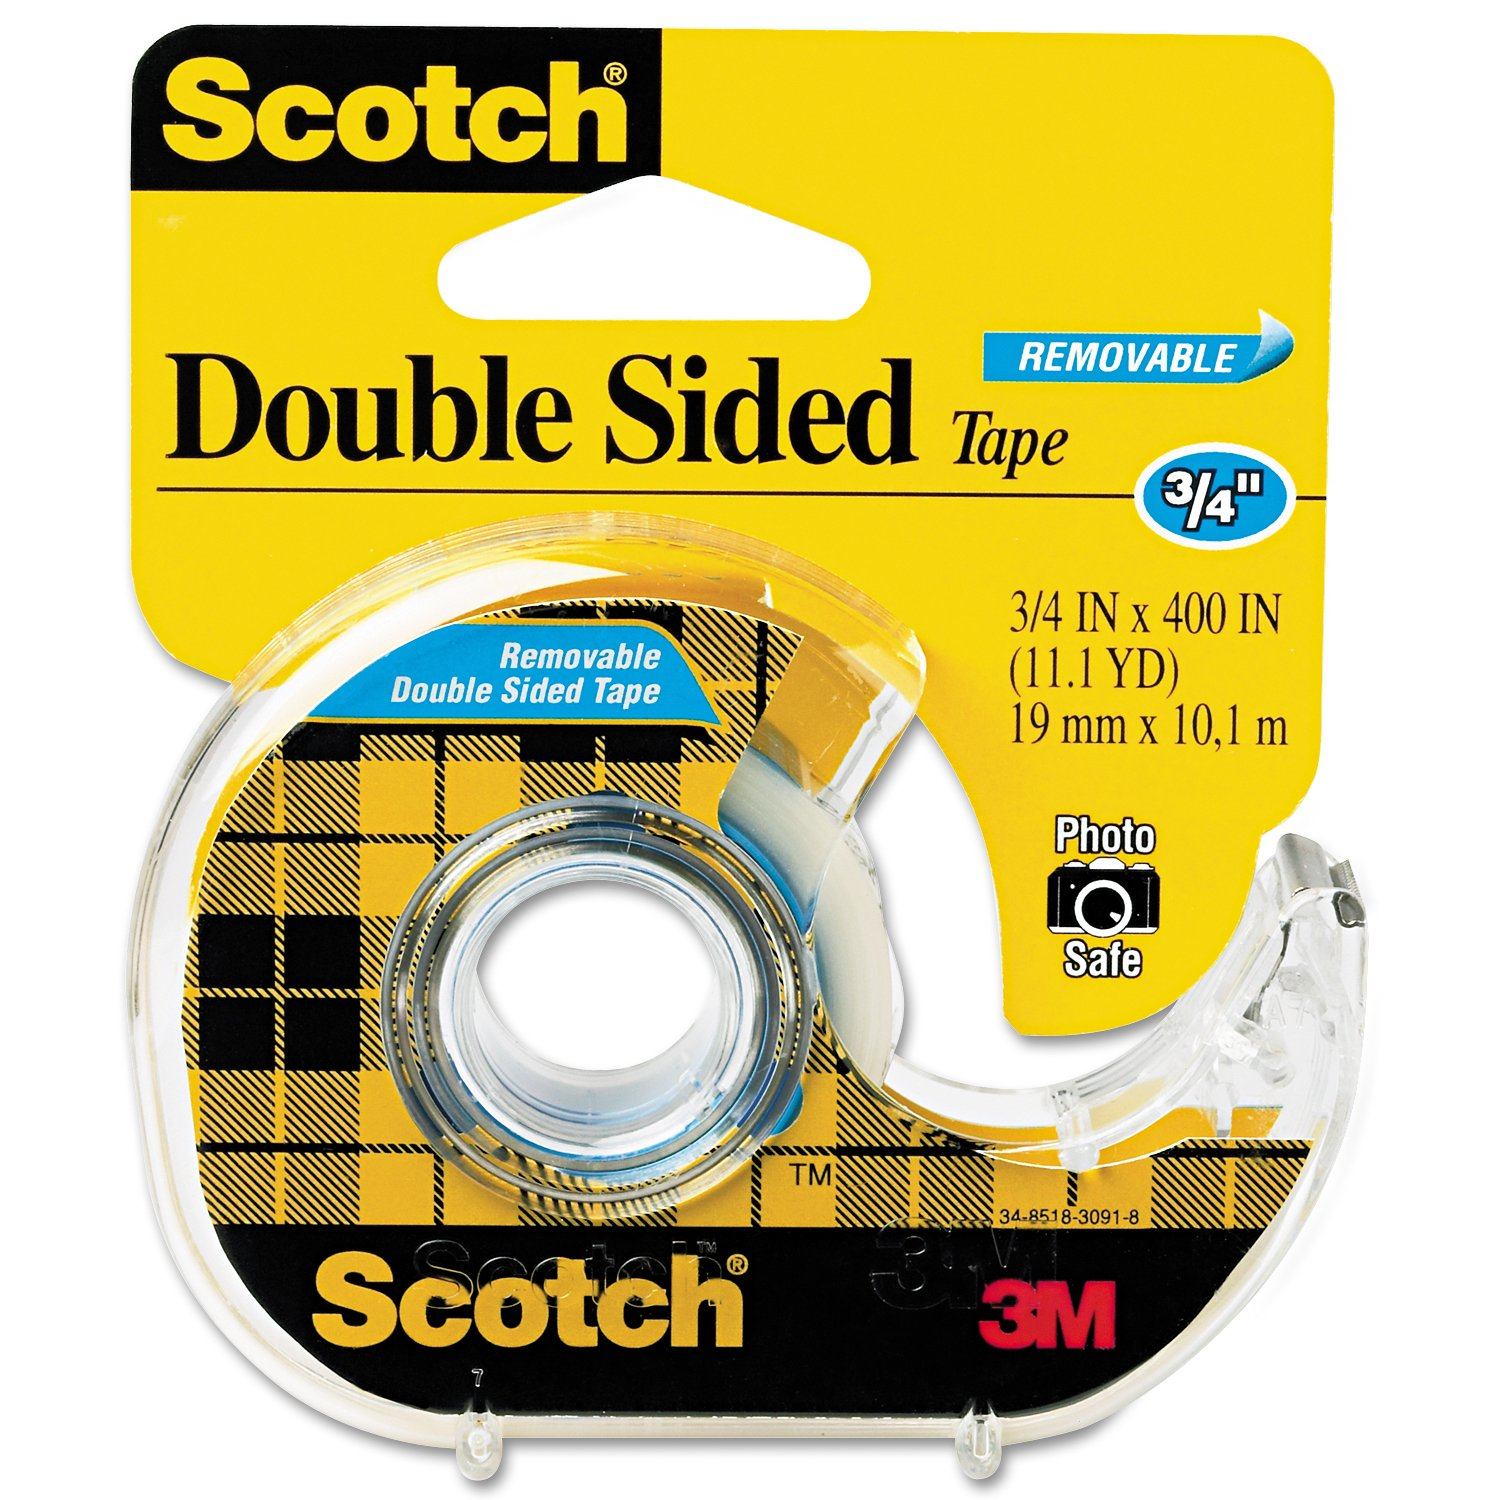 Amazon.com : Scotch Removable Double Sided Tape with Dispenser, No ...